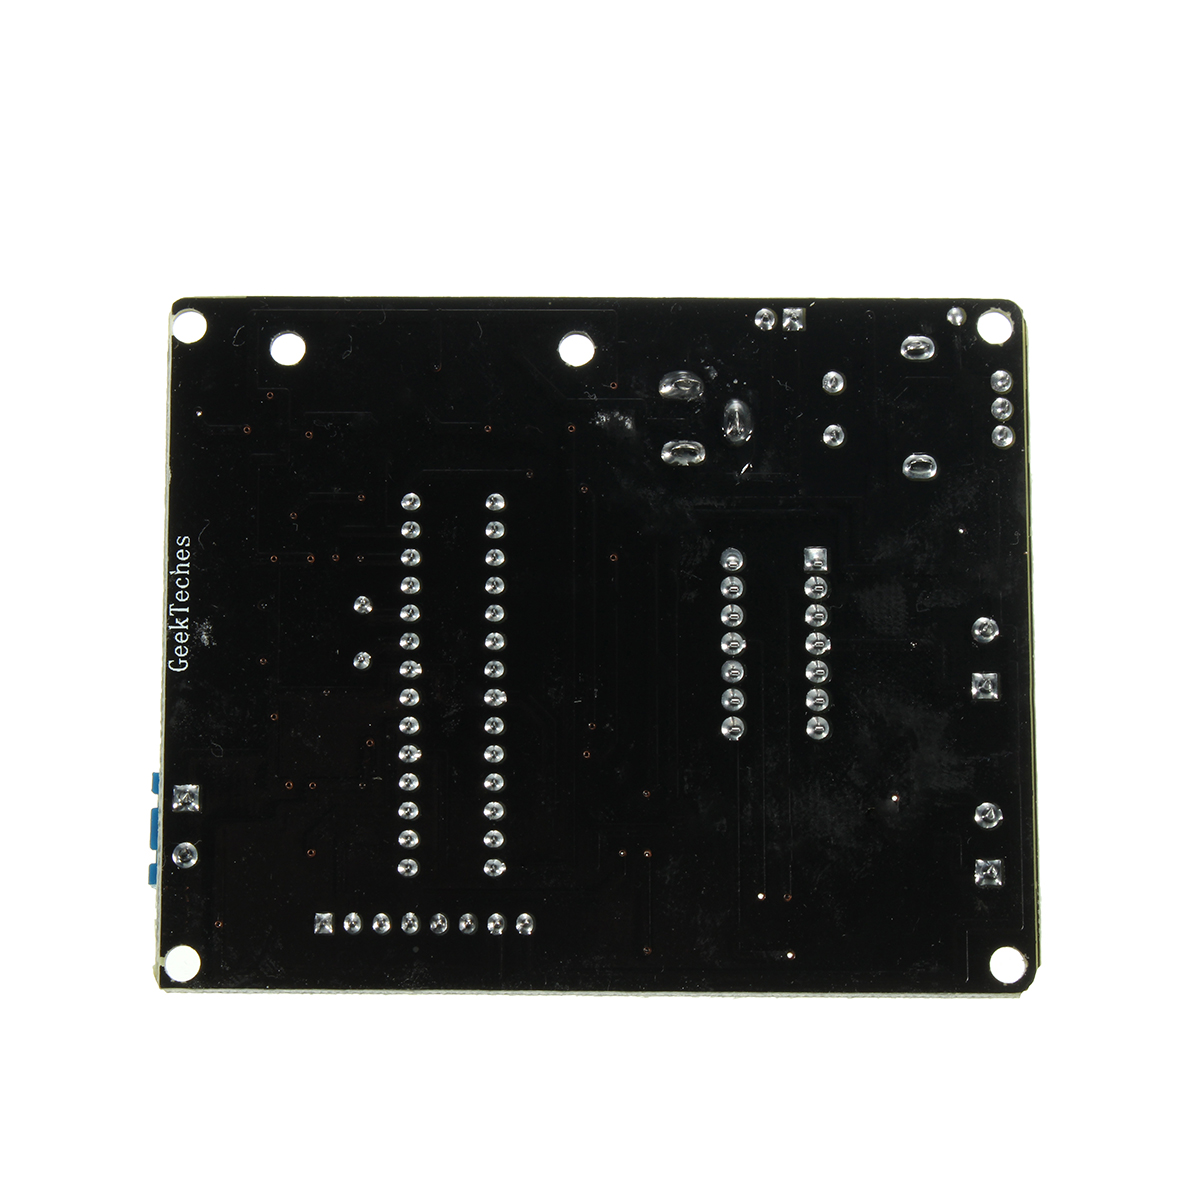 Assembled Tft Gm328 Transistor Tester Diode Lcr Esr Meter Pwm Square Graphic Display Rlc Meterin Integrated Circuits Wave Generator